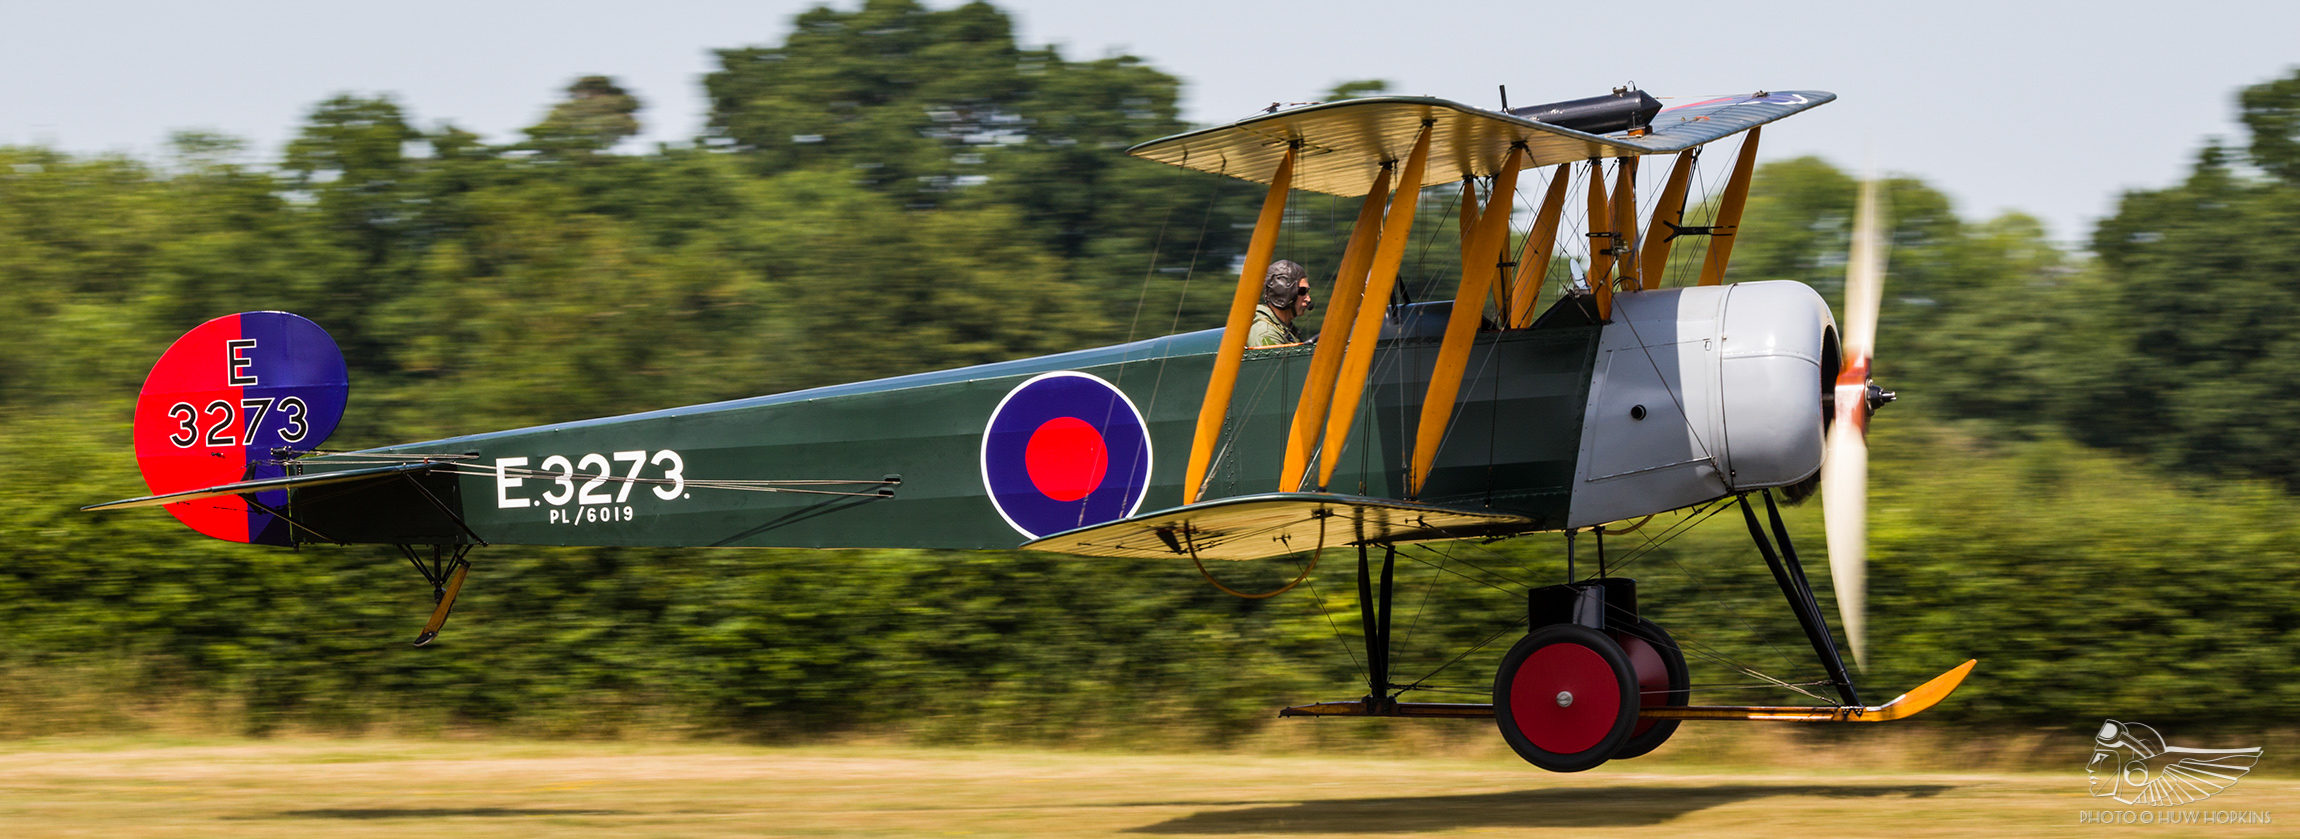 Fourth time lucky for Shuttleworth Great War centenary show